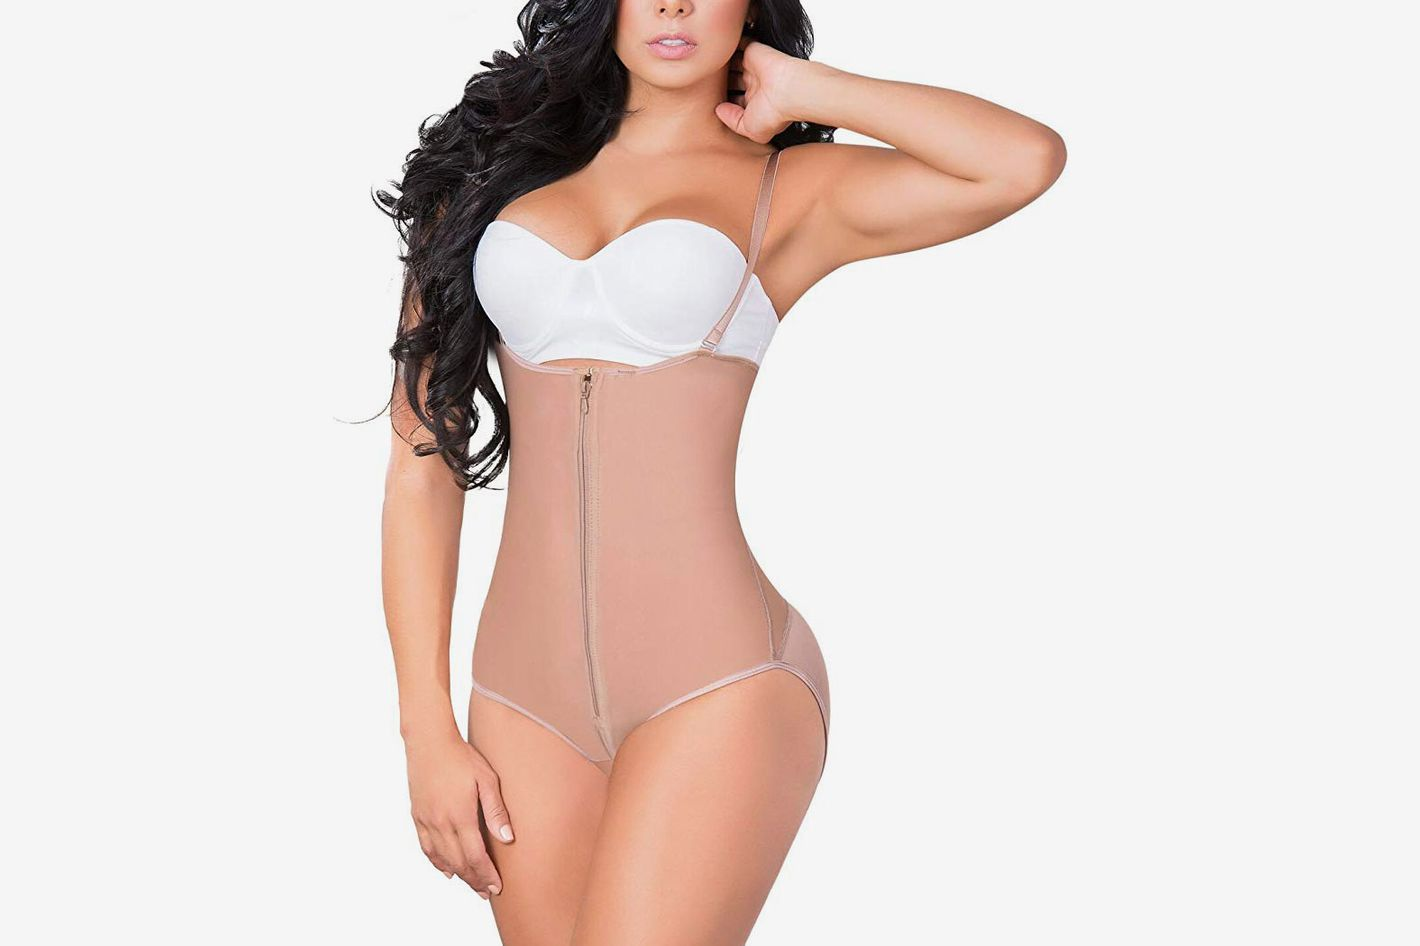 bd9a80ea151cf Jackie London Women s 1040 Bodyshaper